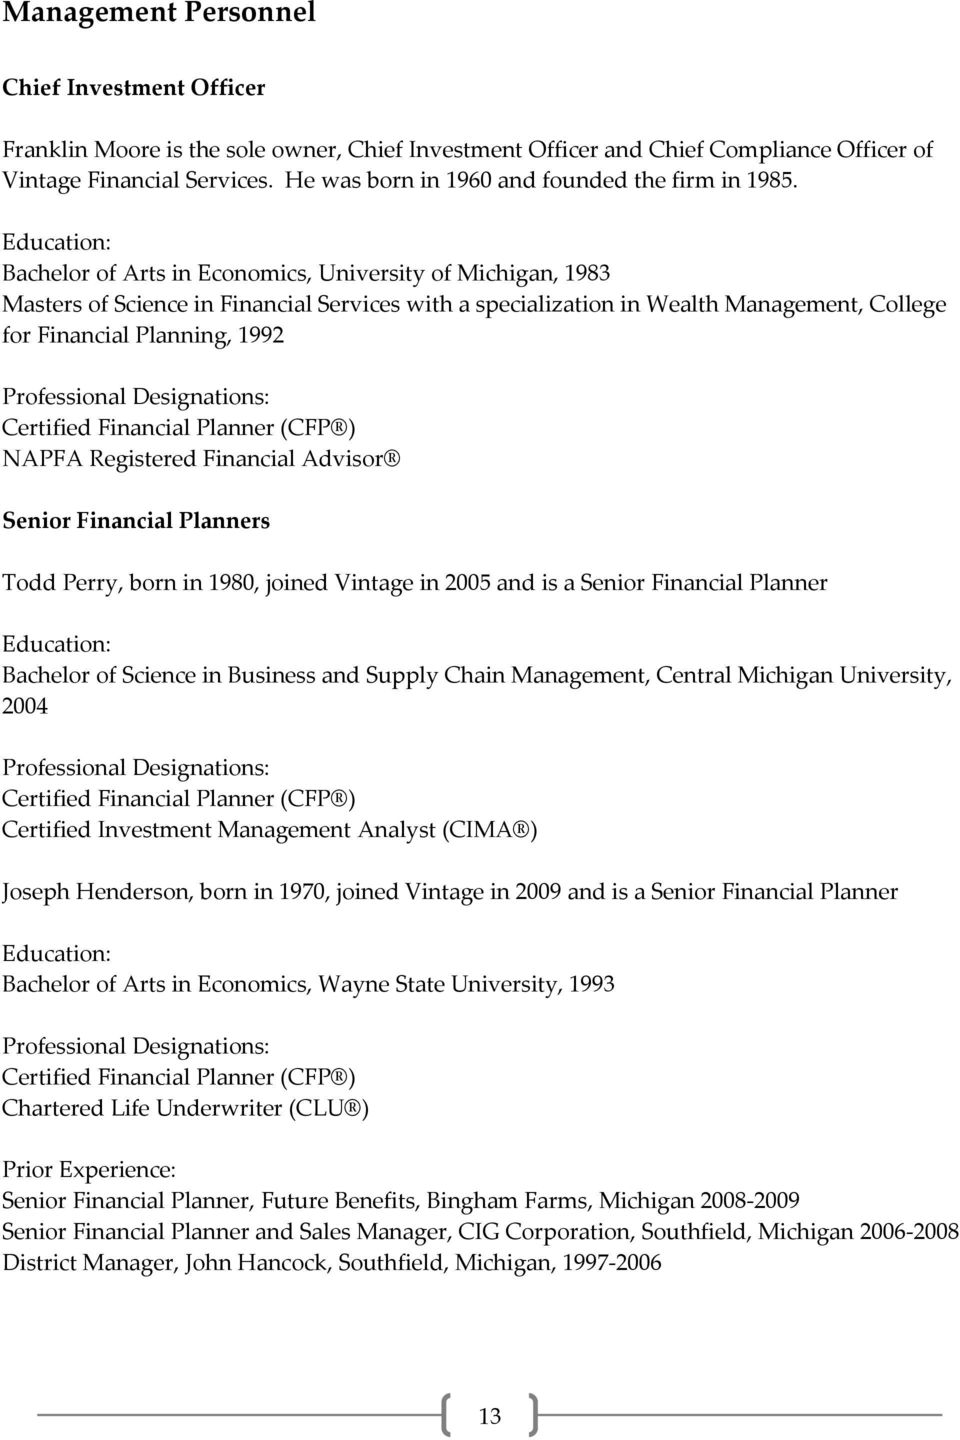 Education: Bachelor of Arts in Economics, University of Michigan, 1983 Masters of Science in Financial Services with a specialization in Wealth Management, College for Financial Planning, 1992